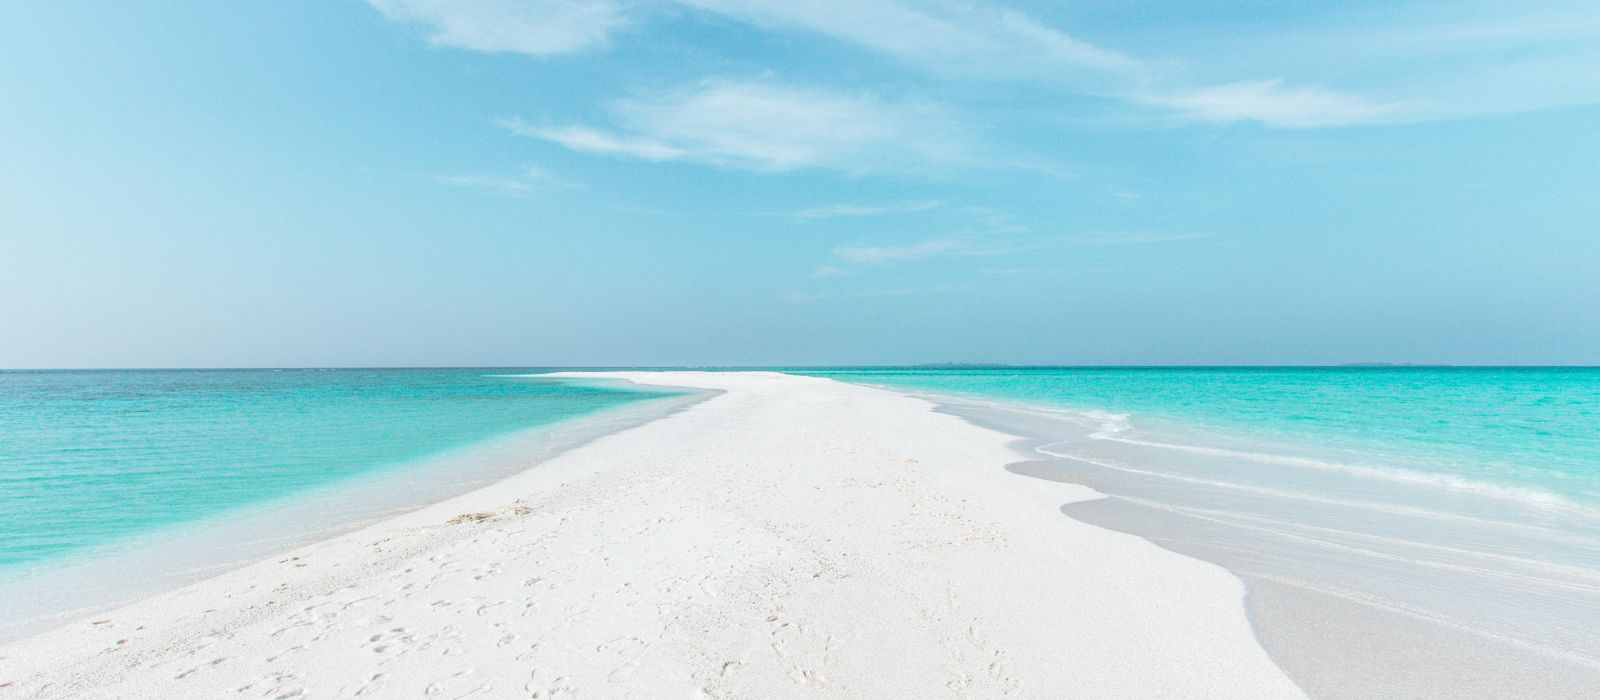 Sandbank in Maldives with crystal clear beautiful water and white sand